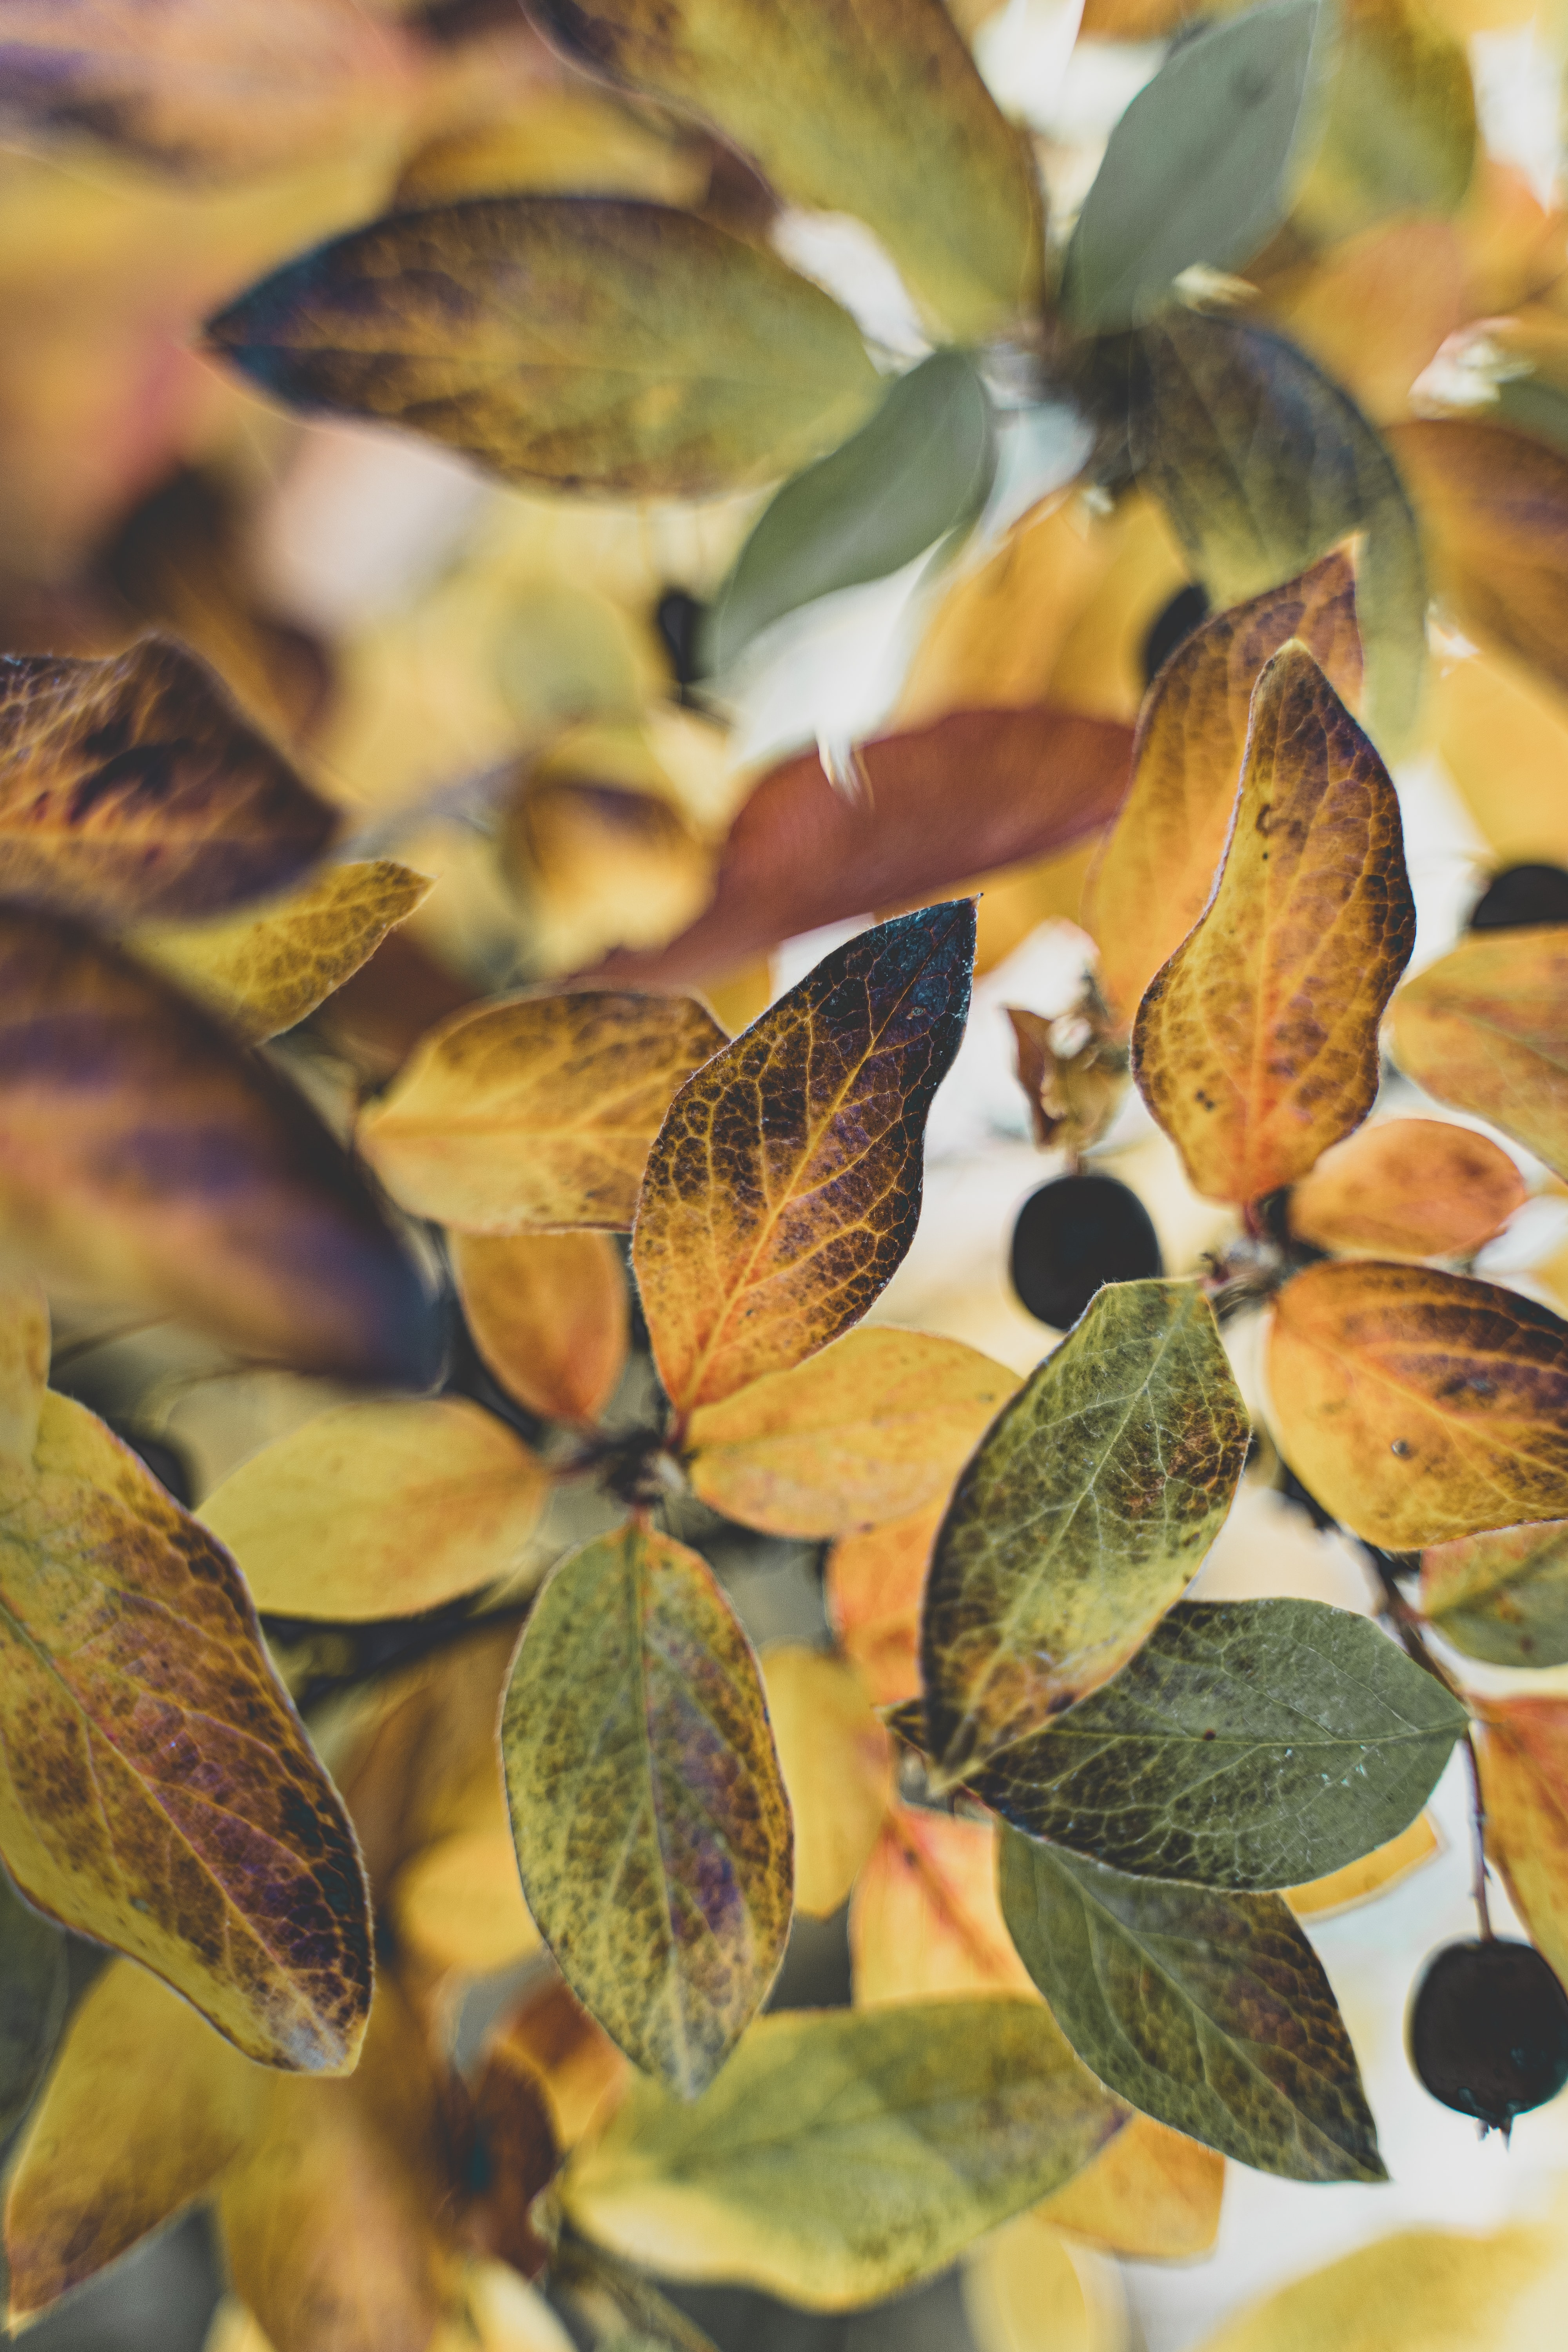 132471 download wallpaper Nature, Leaves, Branch, Veins, Autumn screensavers and pictures for free